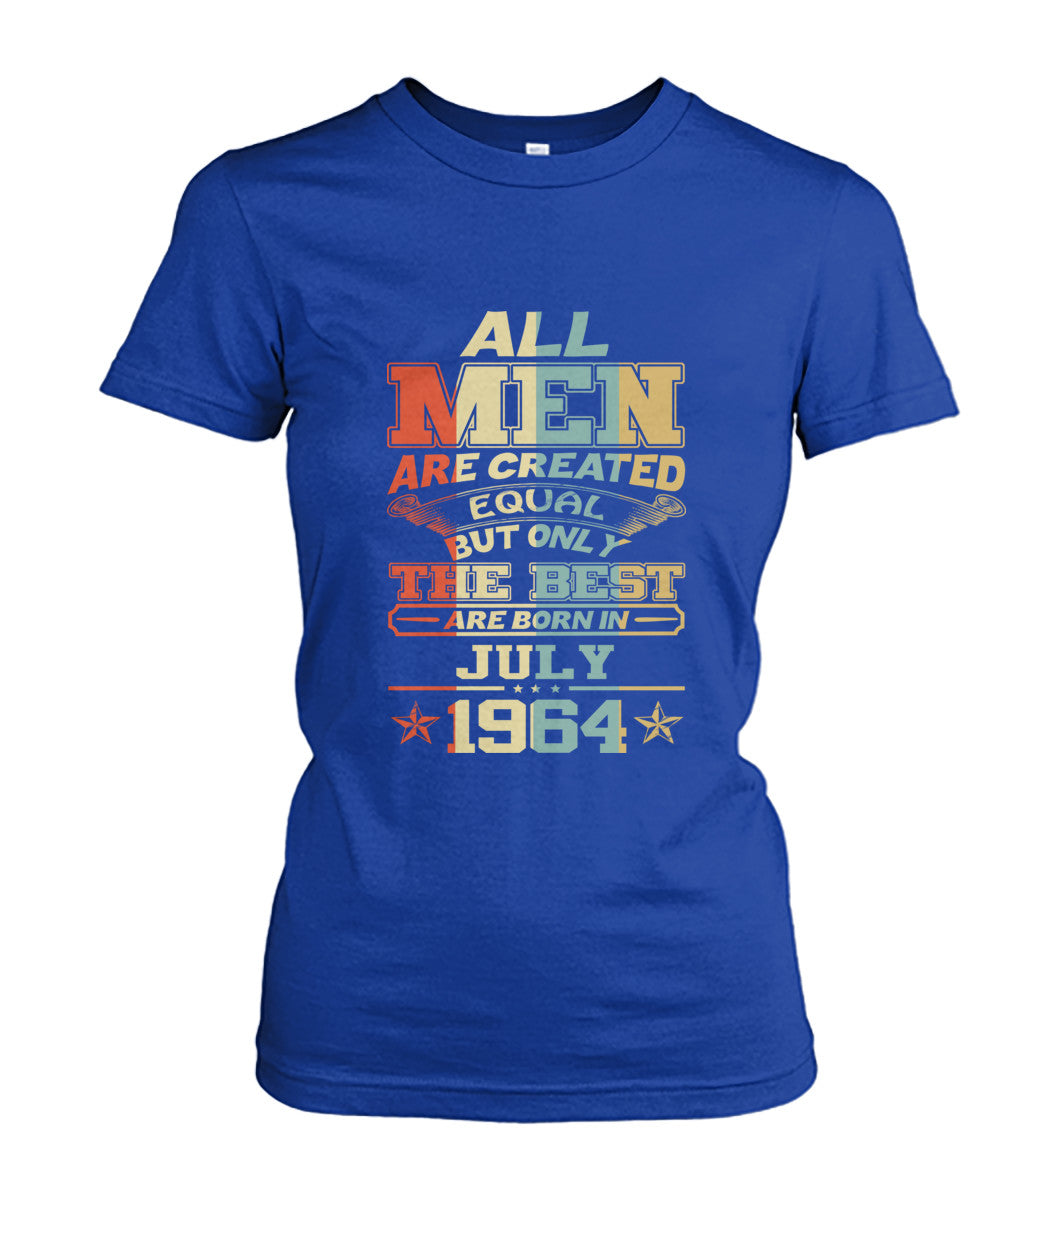 All Men Are Created Equal Only Best Are Born July 1964